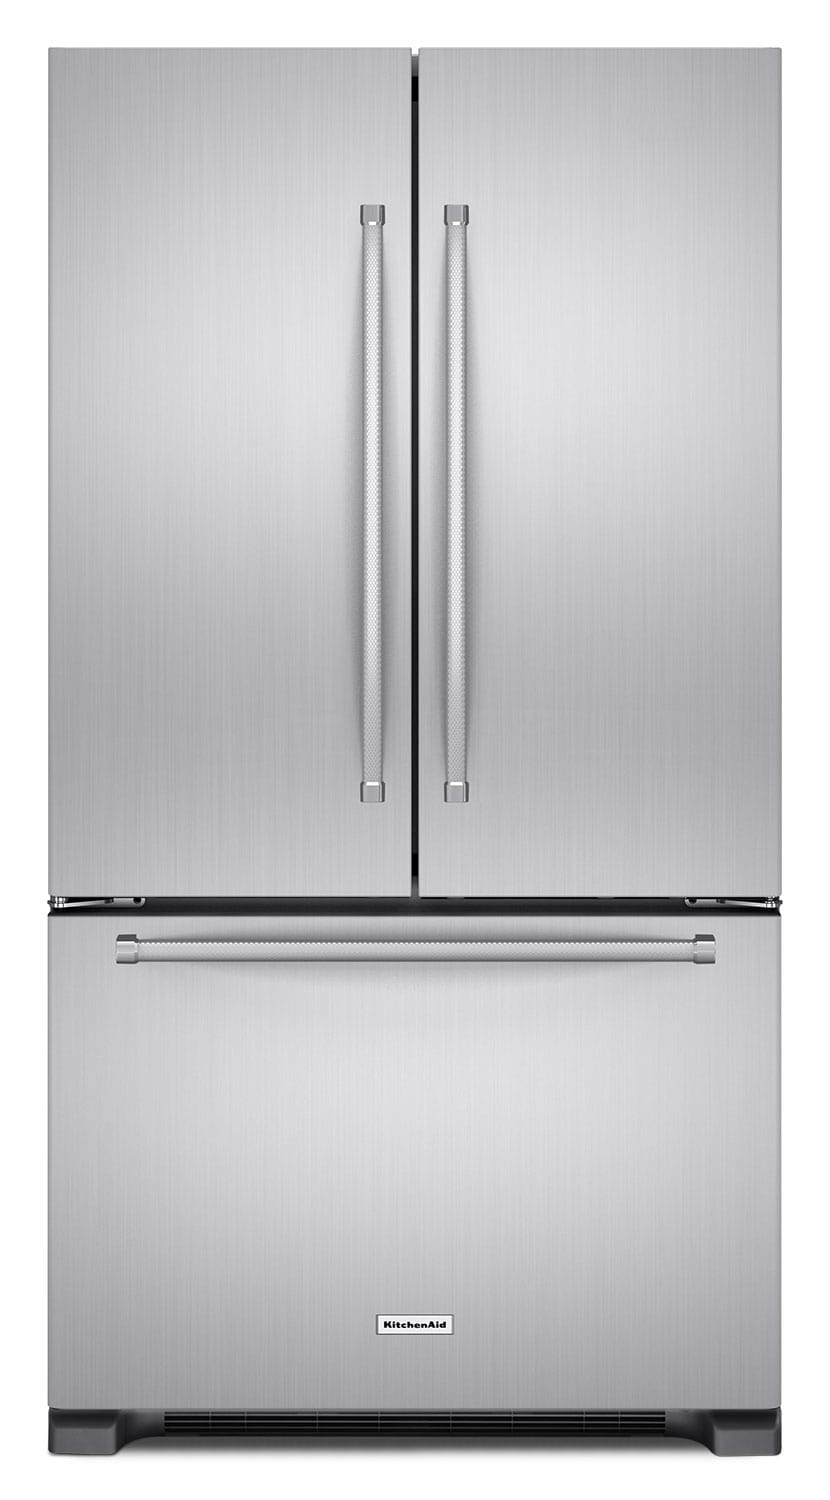 KitchenAid 22 Cu. Ft. French Door Refrigerator with Interior Dispenser - Stainless Steel